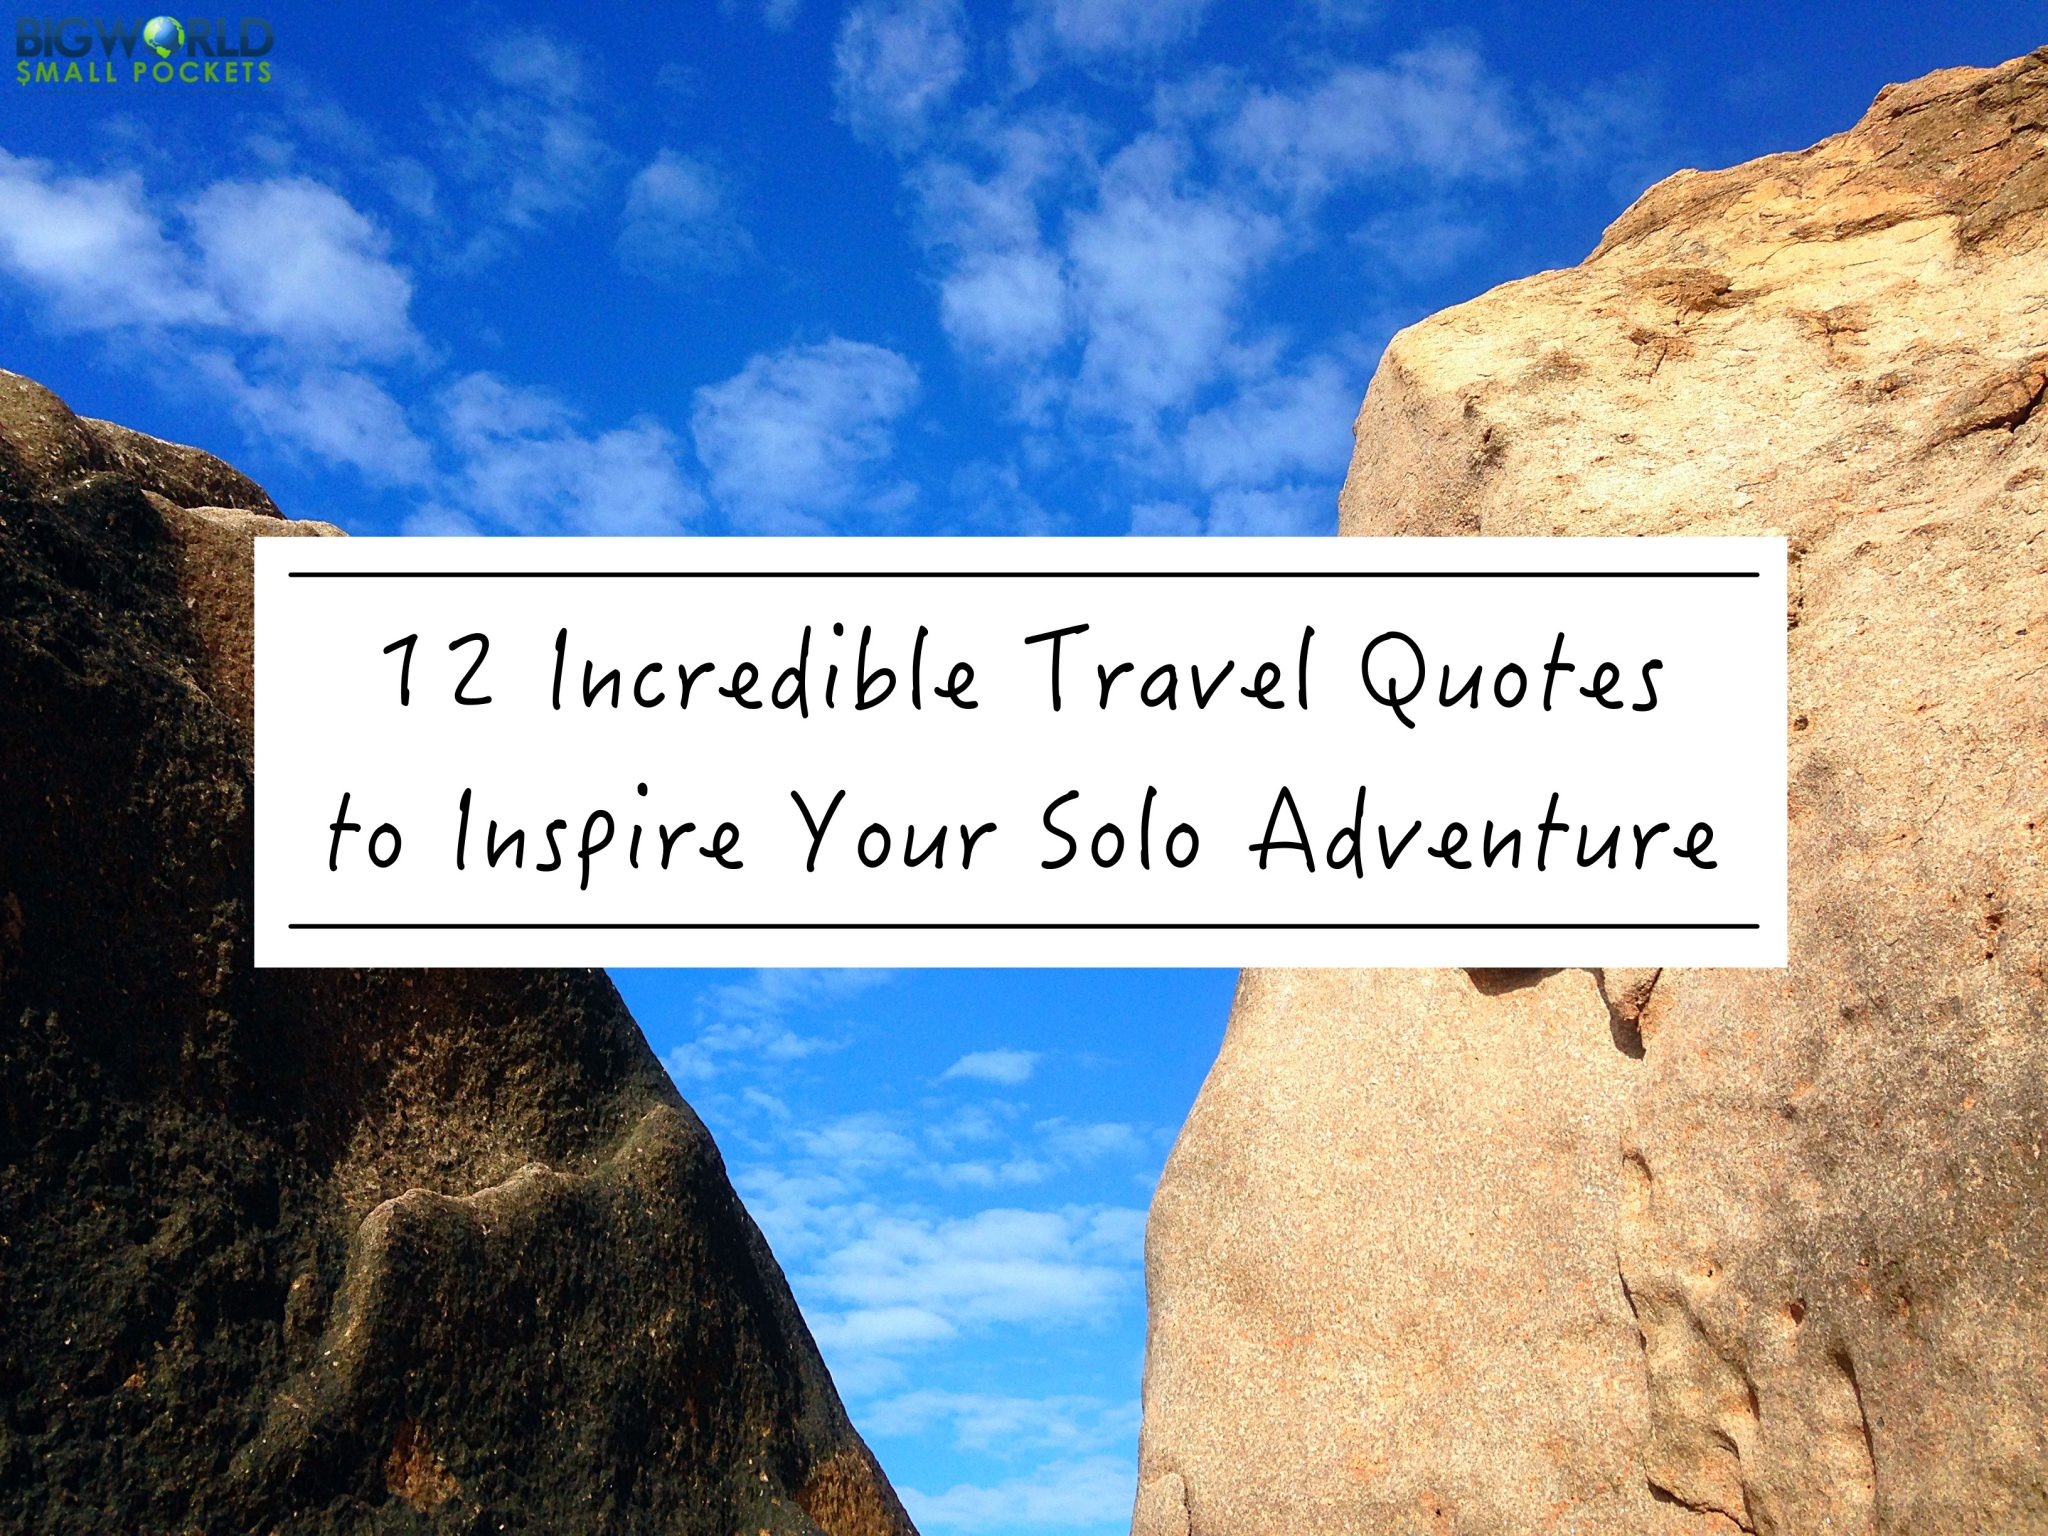 Quotes Travel 12 Incredible Travel Quotes To Inspire Your Solo Adventure  Big